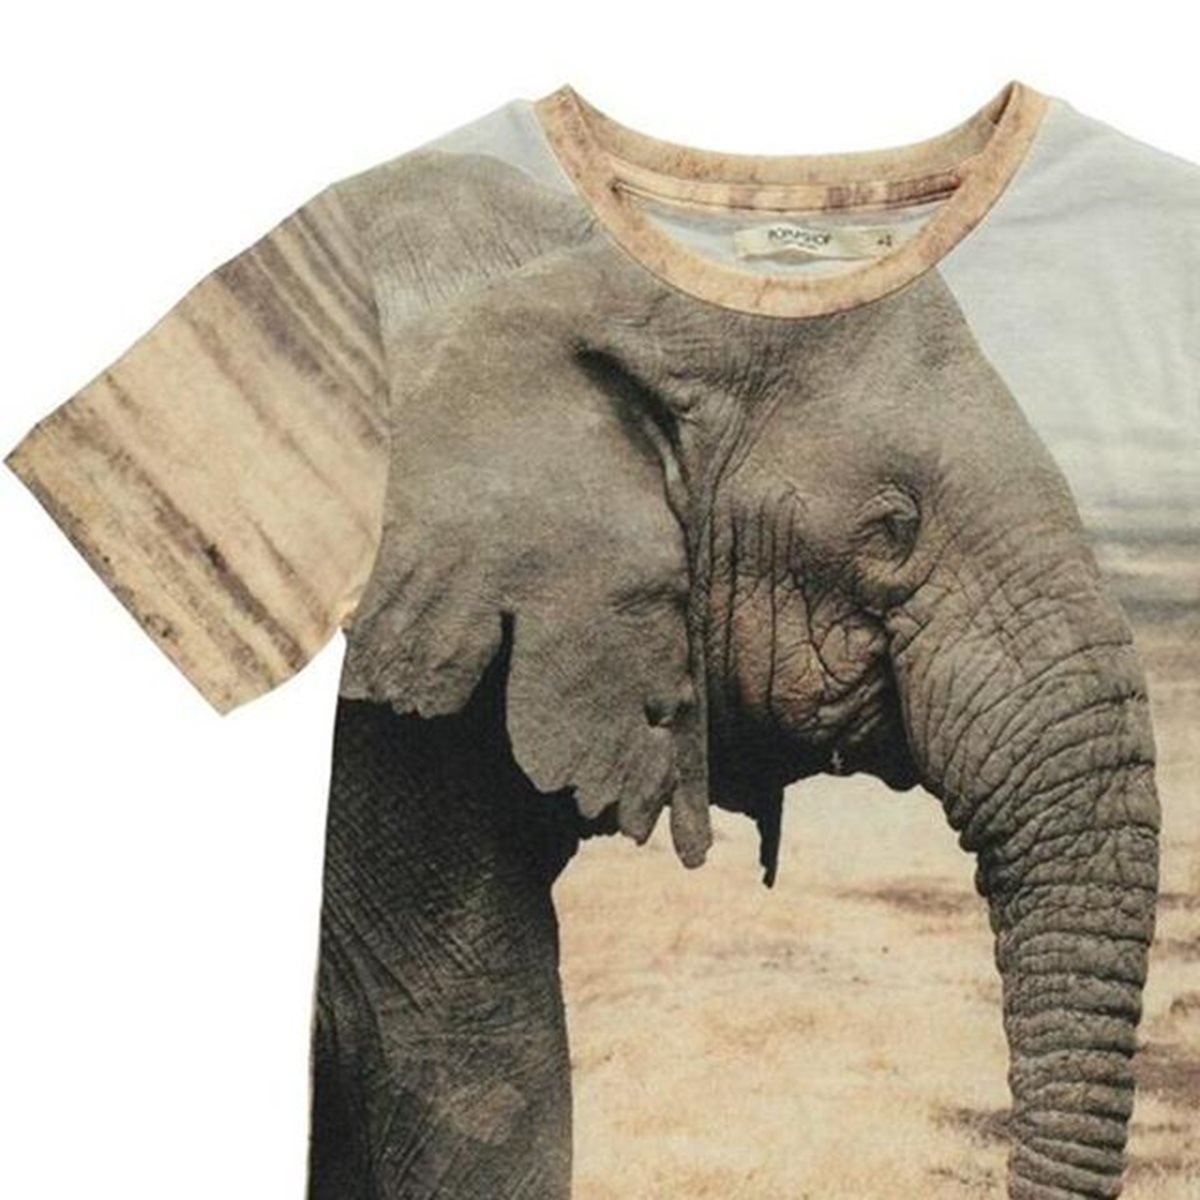 2b0a54de191d MonkeyMcCoy | Basic Short Sleeve T-Shirt - Elephant Print - Monkey McCoy